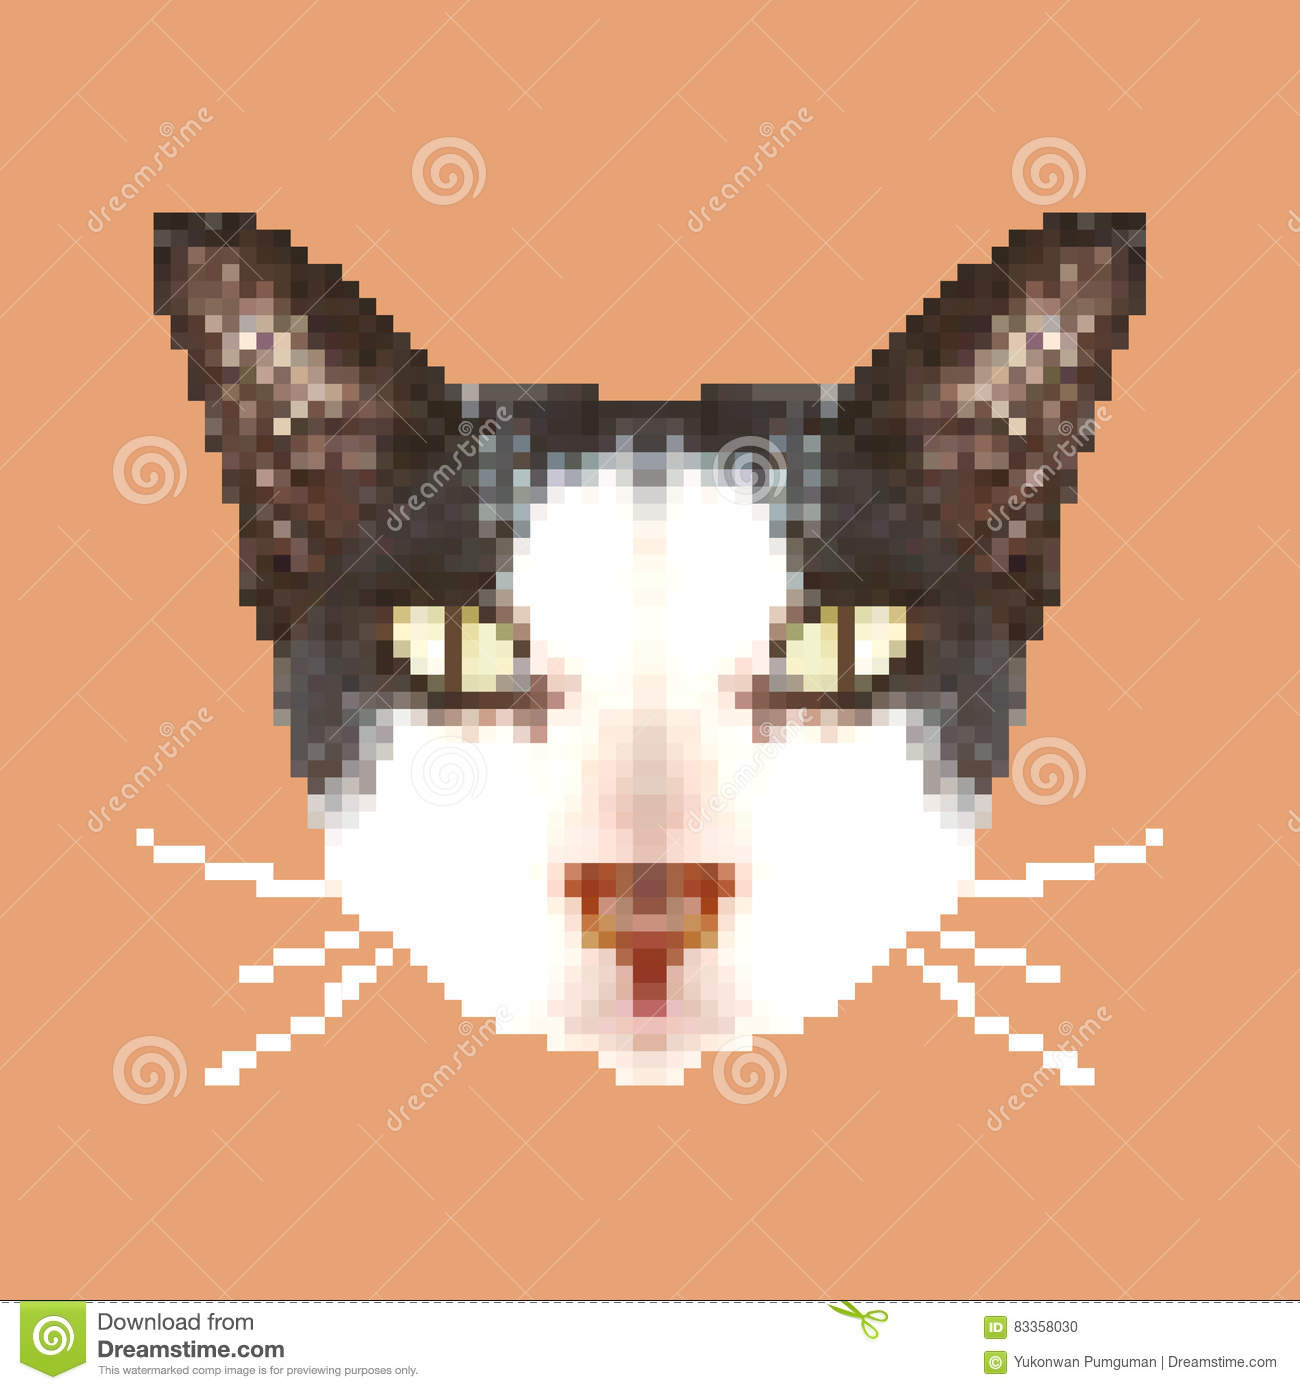 Art Principal De Pixel De Chat Vecteur Animal Carré D